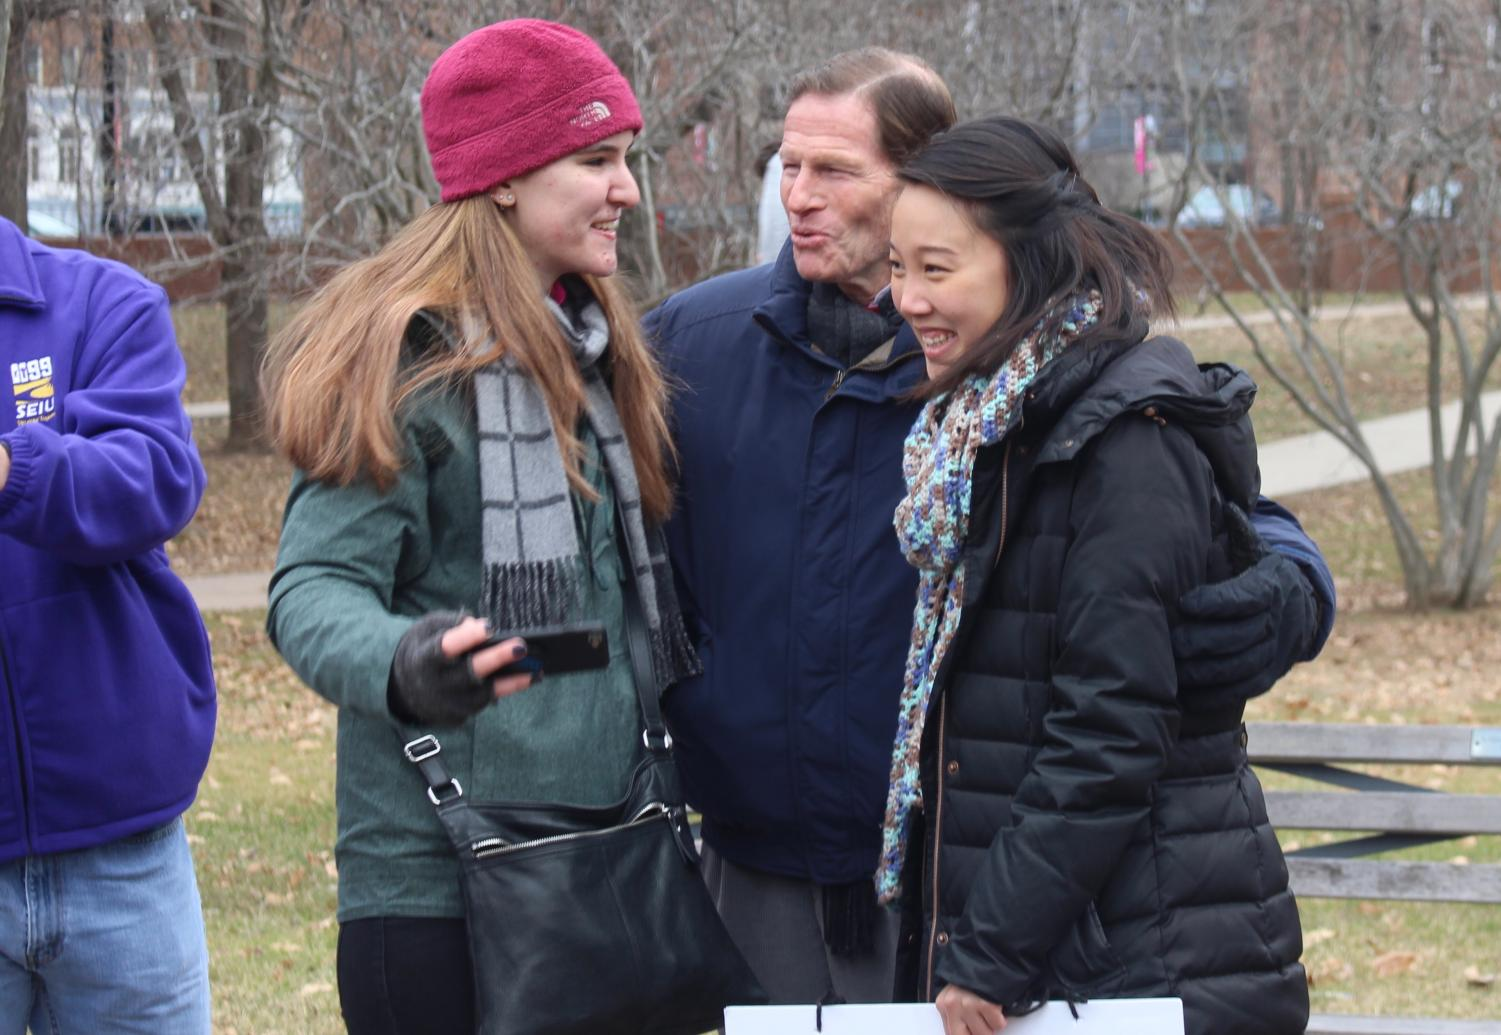 Politicians+like+Representative+Richard+Blumenthal+came+to+support+the+Hartford+Women%27s+March.